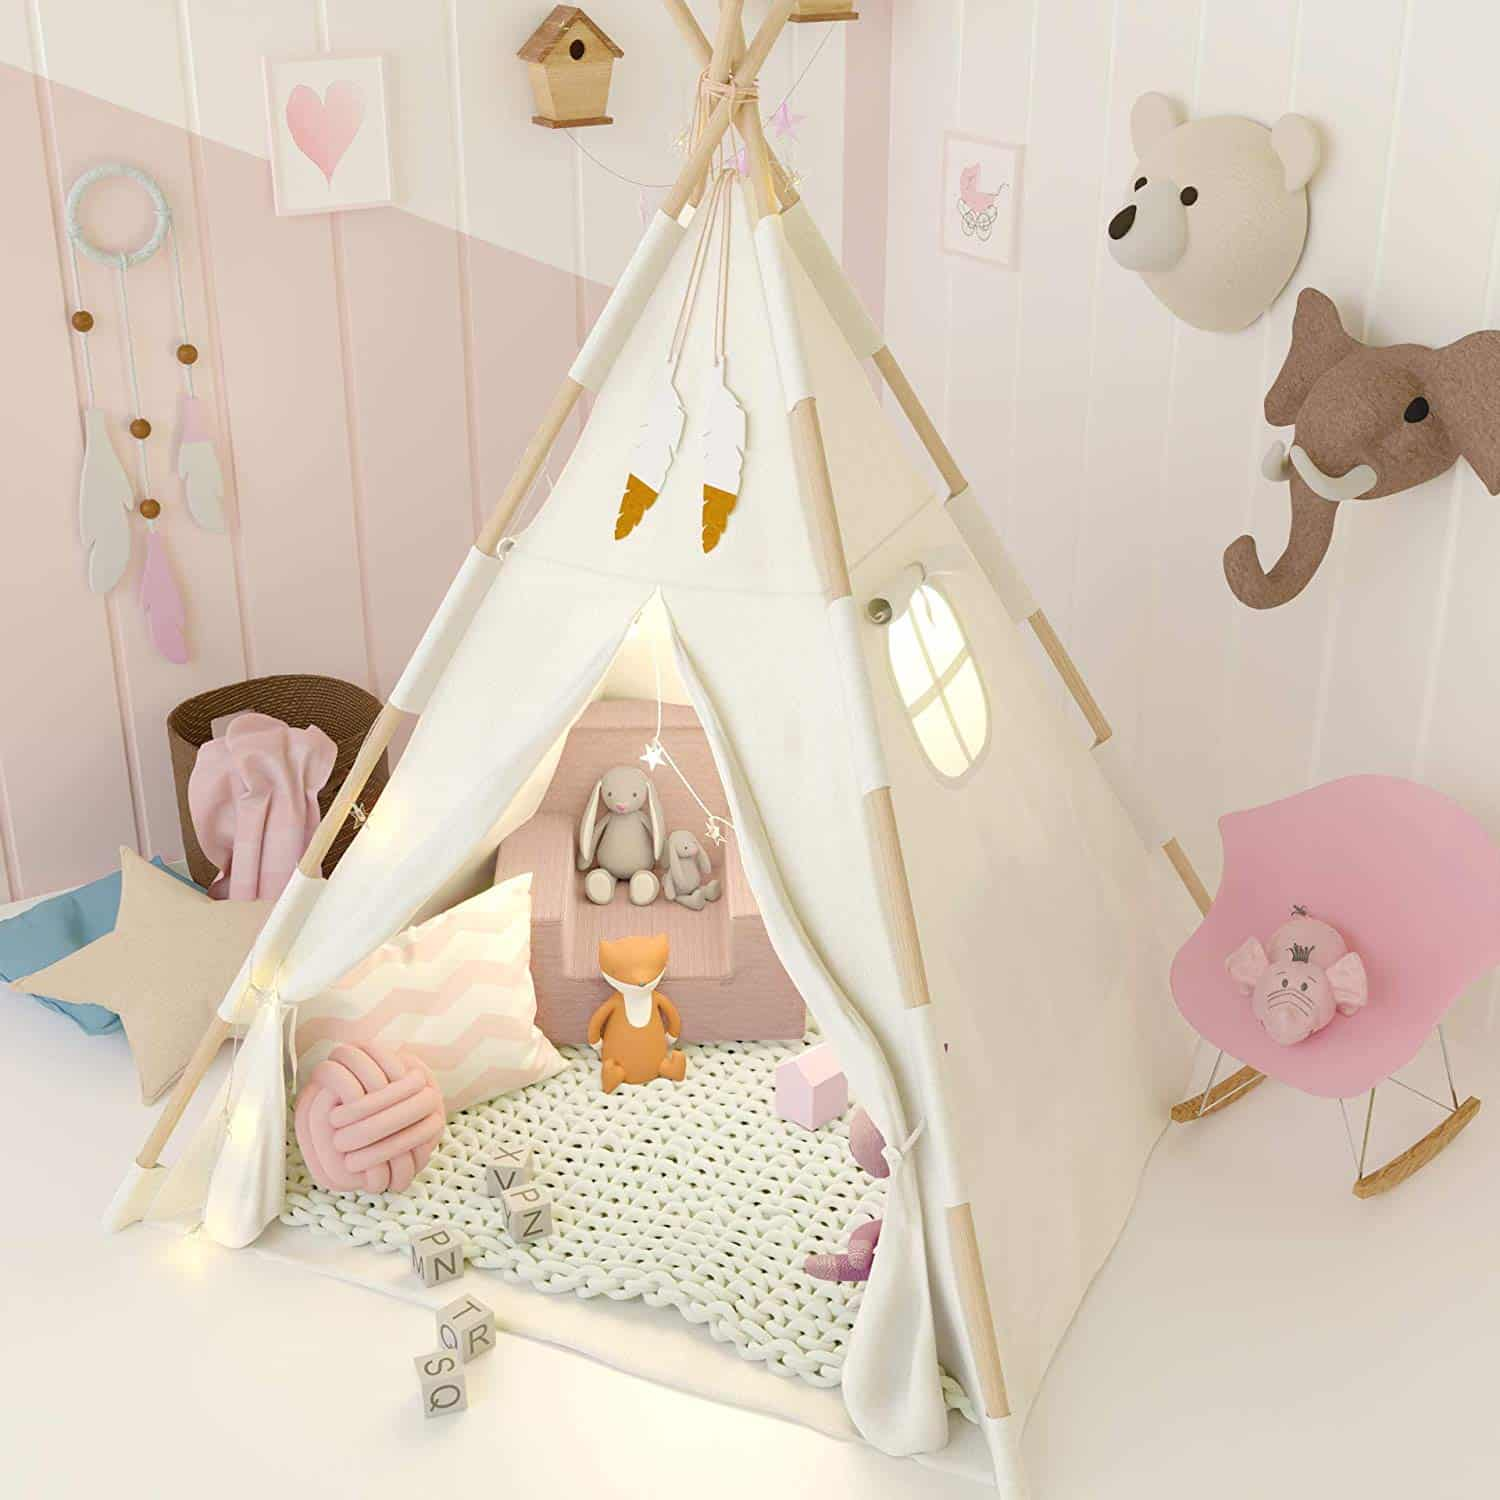 TazzToys Kids Teepee Tent for Kids